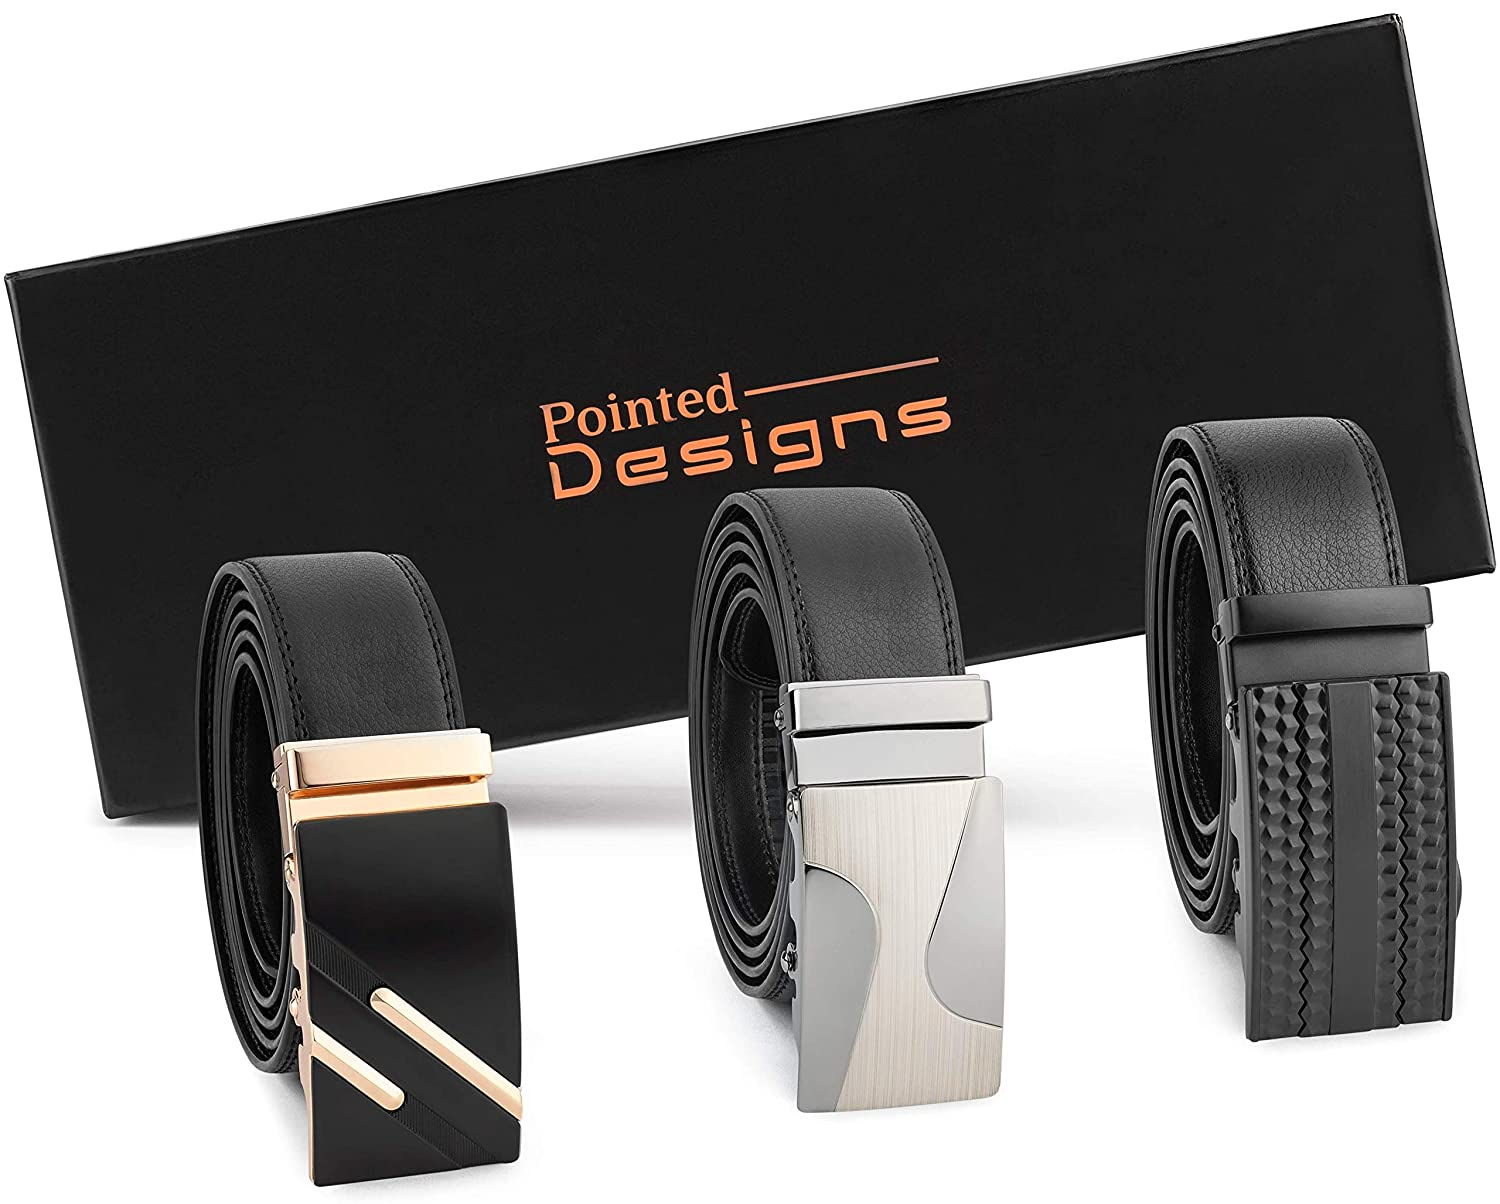 Men's Belt and Buckle Gift Set - 2 Black Leather Belts With 3 Changeable Metal Buckles in Nice Gift Box